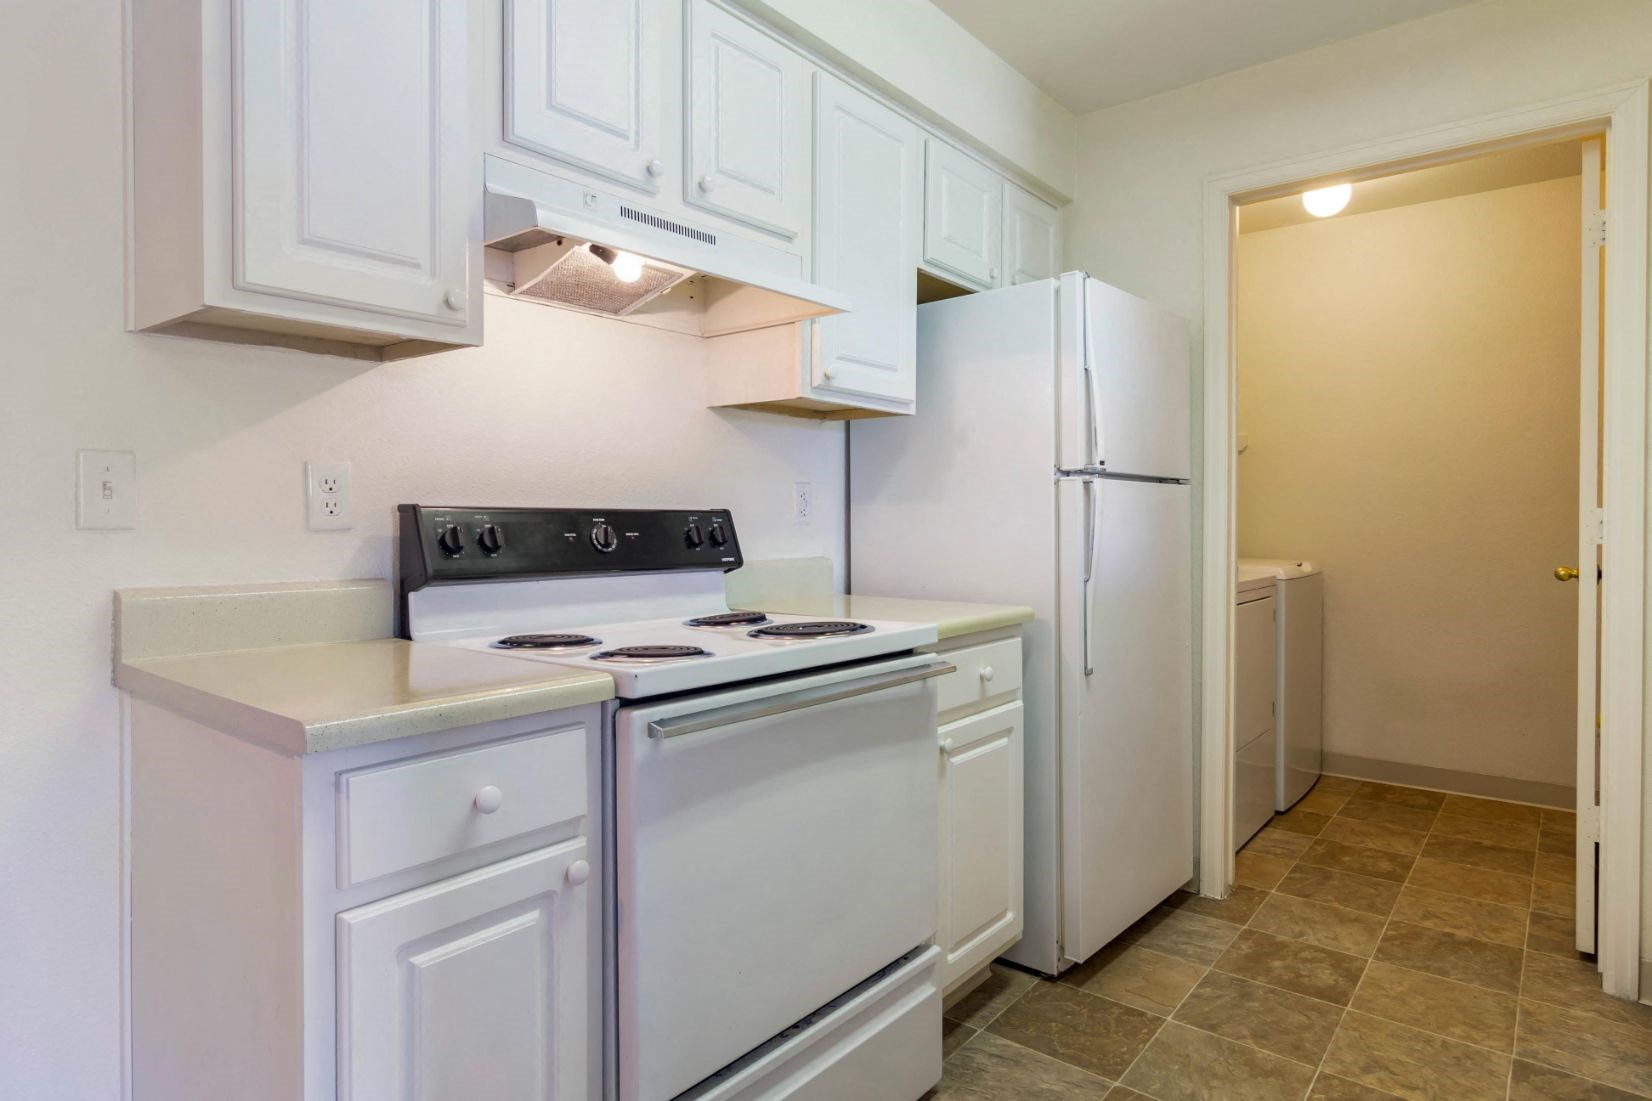 Legacy Heights Apartments | Fully Equipped Kitchen with Laundry Room